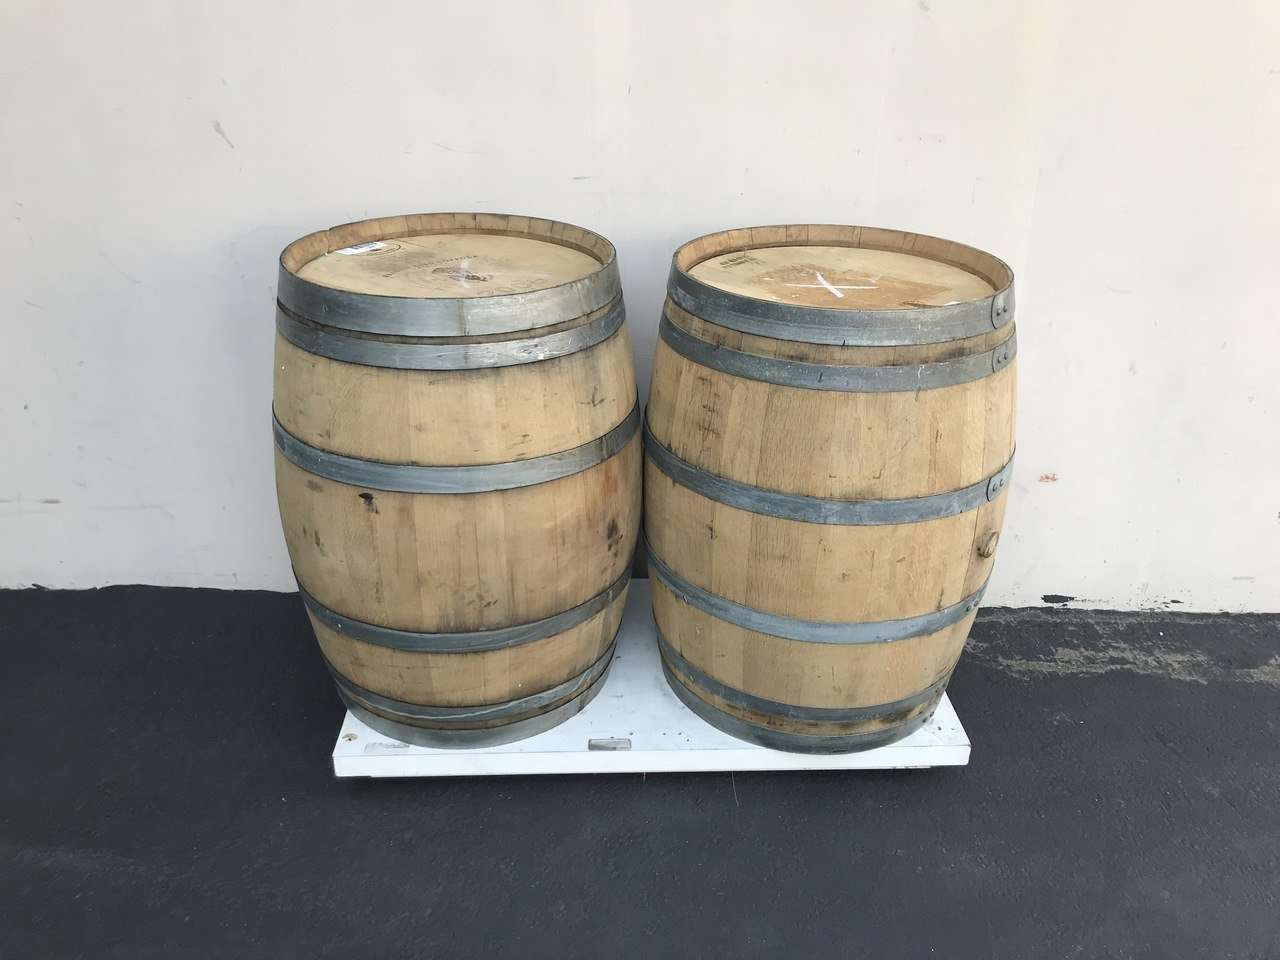 Barrels Wine Statue Life Size Wooden Prop Decor - Pre Owned - LM Treasures